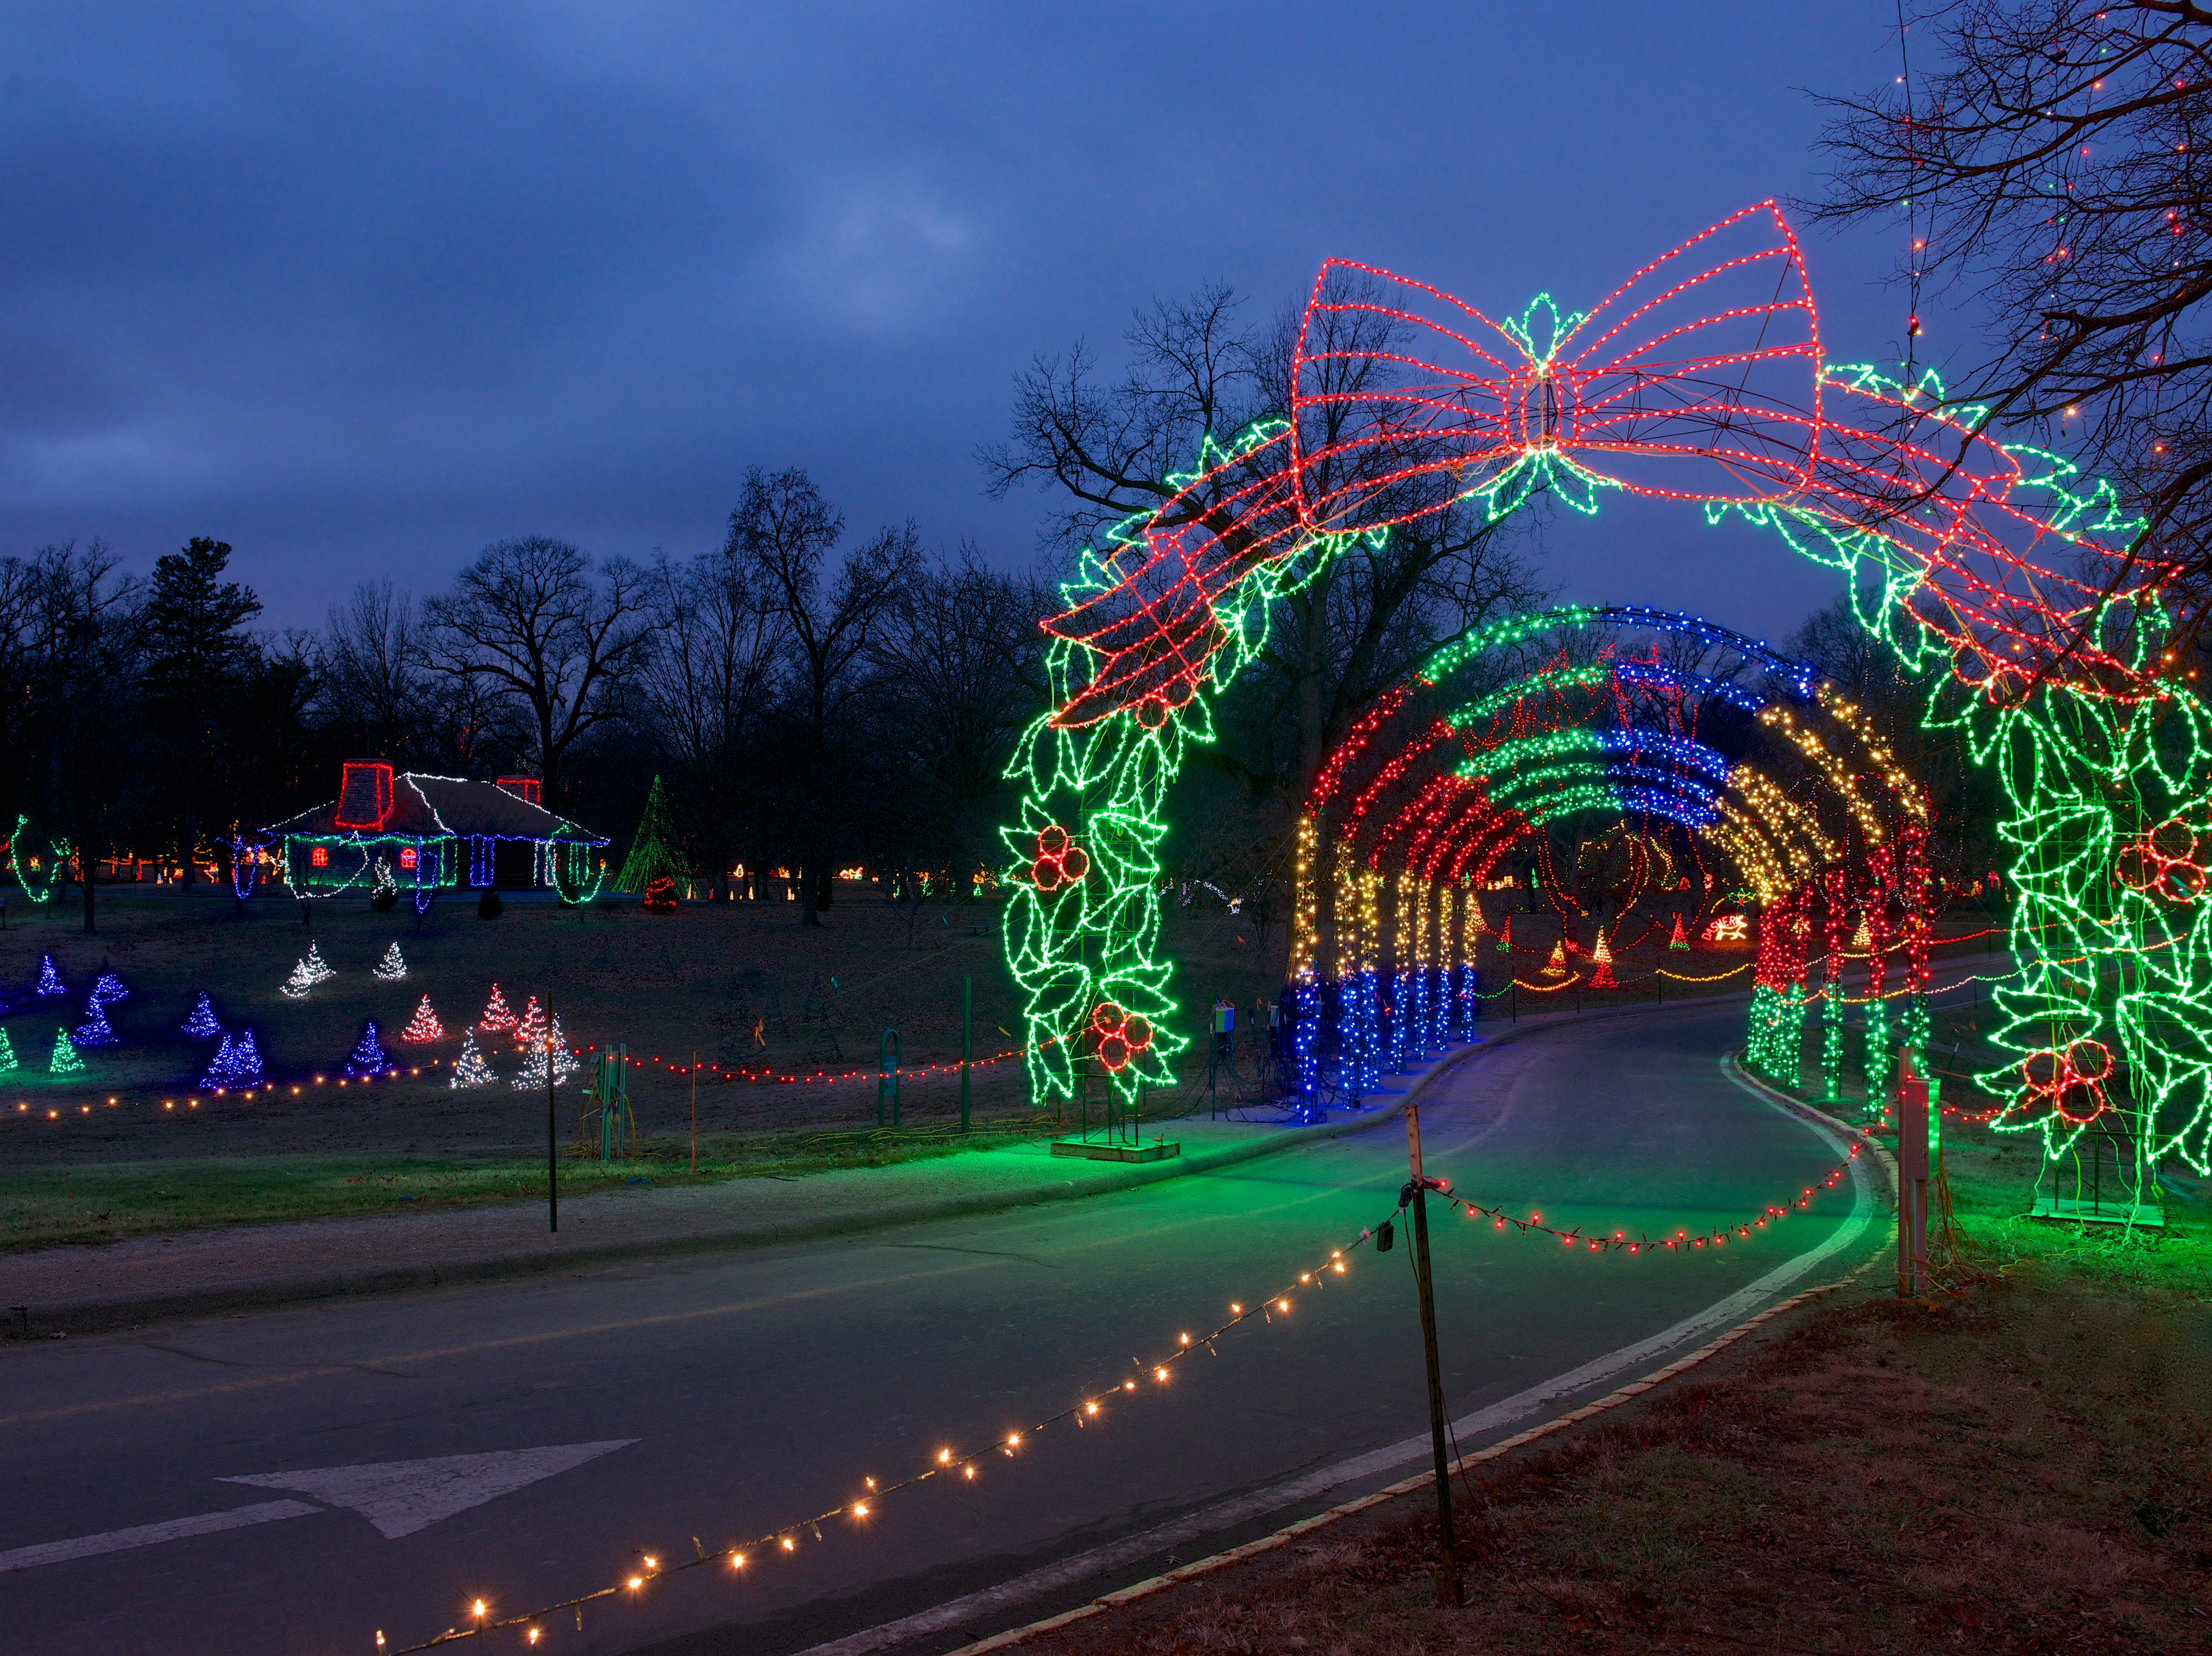 Holiday lights at Tilles Park in St. Louis on December 29, 2013.